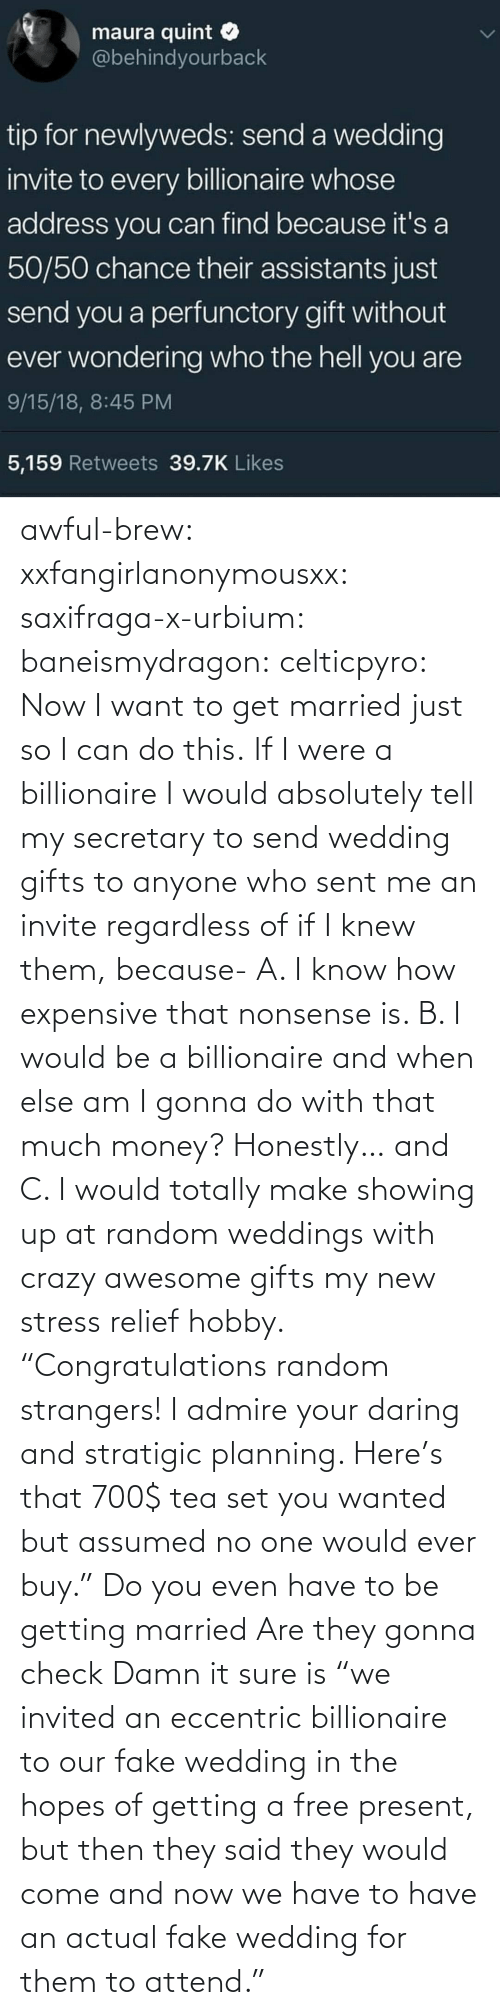 """Crazy, Fake, and Money: awful-brew:  xxfangirlanonymousxx:  saxifraga-x-urbium:  baneismydragon:  celticpyro: Now I want to get married just so I can do this.  If I were a billionaire I would absolutely tell my secretary to send wedding gifts to anyone who sent me an invite regardless of if I knew them, because- A. I know how expensive that nonsense is. B. I would be a billionaire and when else am I gonna do with that much money? Honestly… and C. I would totally make showing up at random weddings with crazy awesome gifts my new stress relief hobby. """"Congratulations random strangers! I admire your daring and stratigic planning. Here's that 700$ tea set you wanted but assumed no one would ever buy.""""   Do you even have to be getting married Are they gonna check   Damn it sure is  """"we invited an eccentric billionaire to our fake wedding in the hopes of getting a free present, but then they said they would come and now we have to have an actual fake wedding for them to attend."""""""